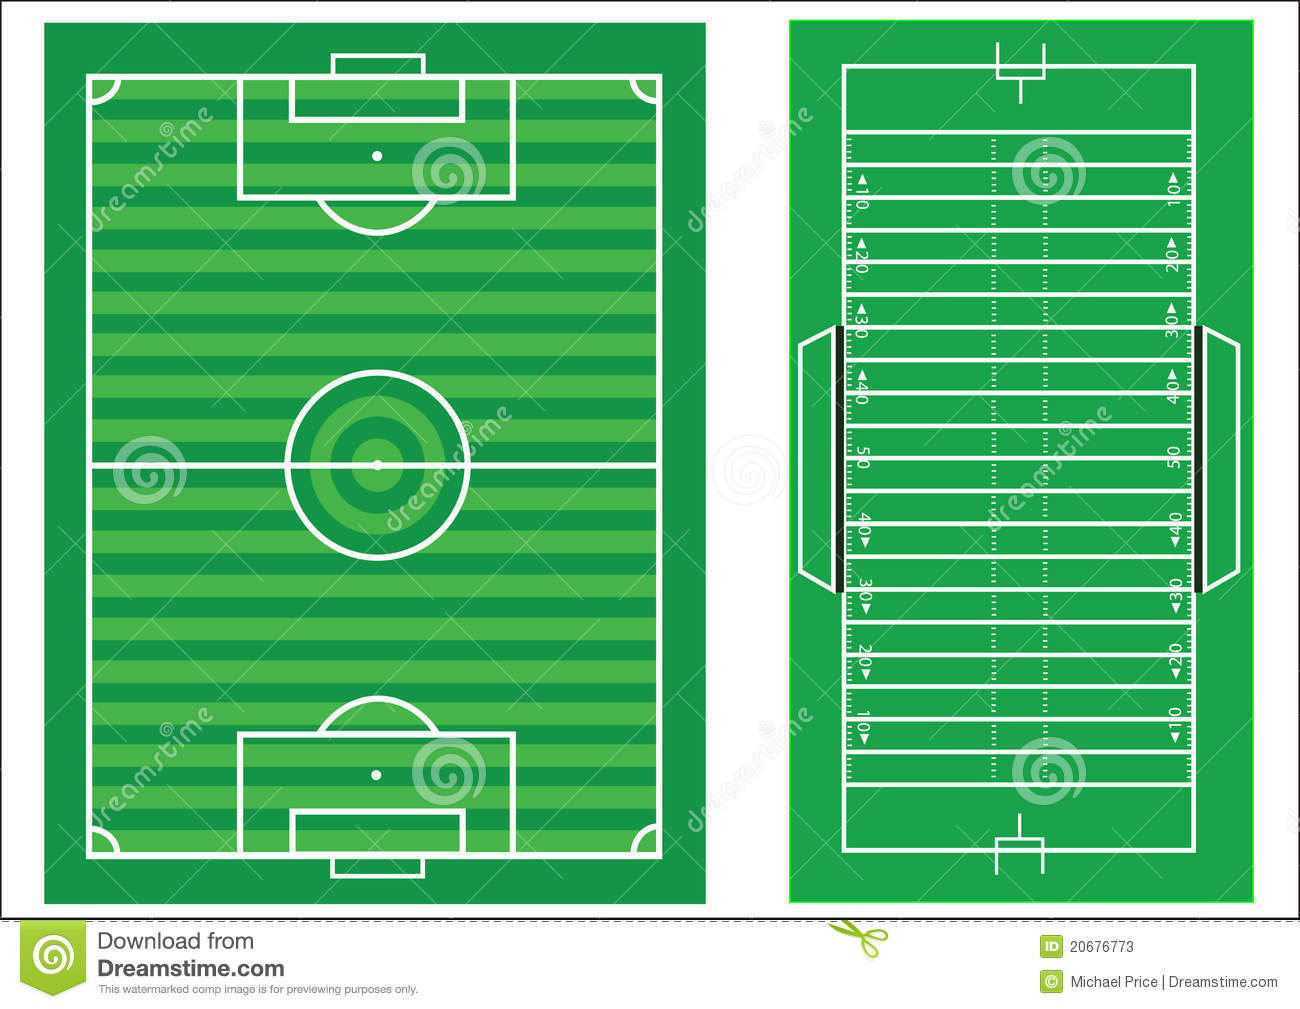 diagram of football ground with measurements 2000 vw jetta vr6 fuse box scale soccer and american stock vector